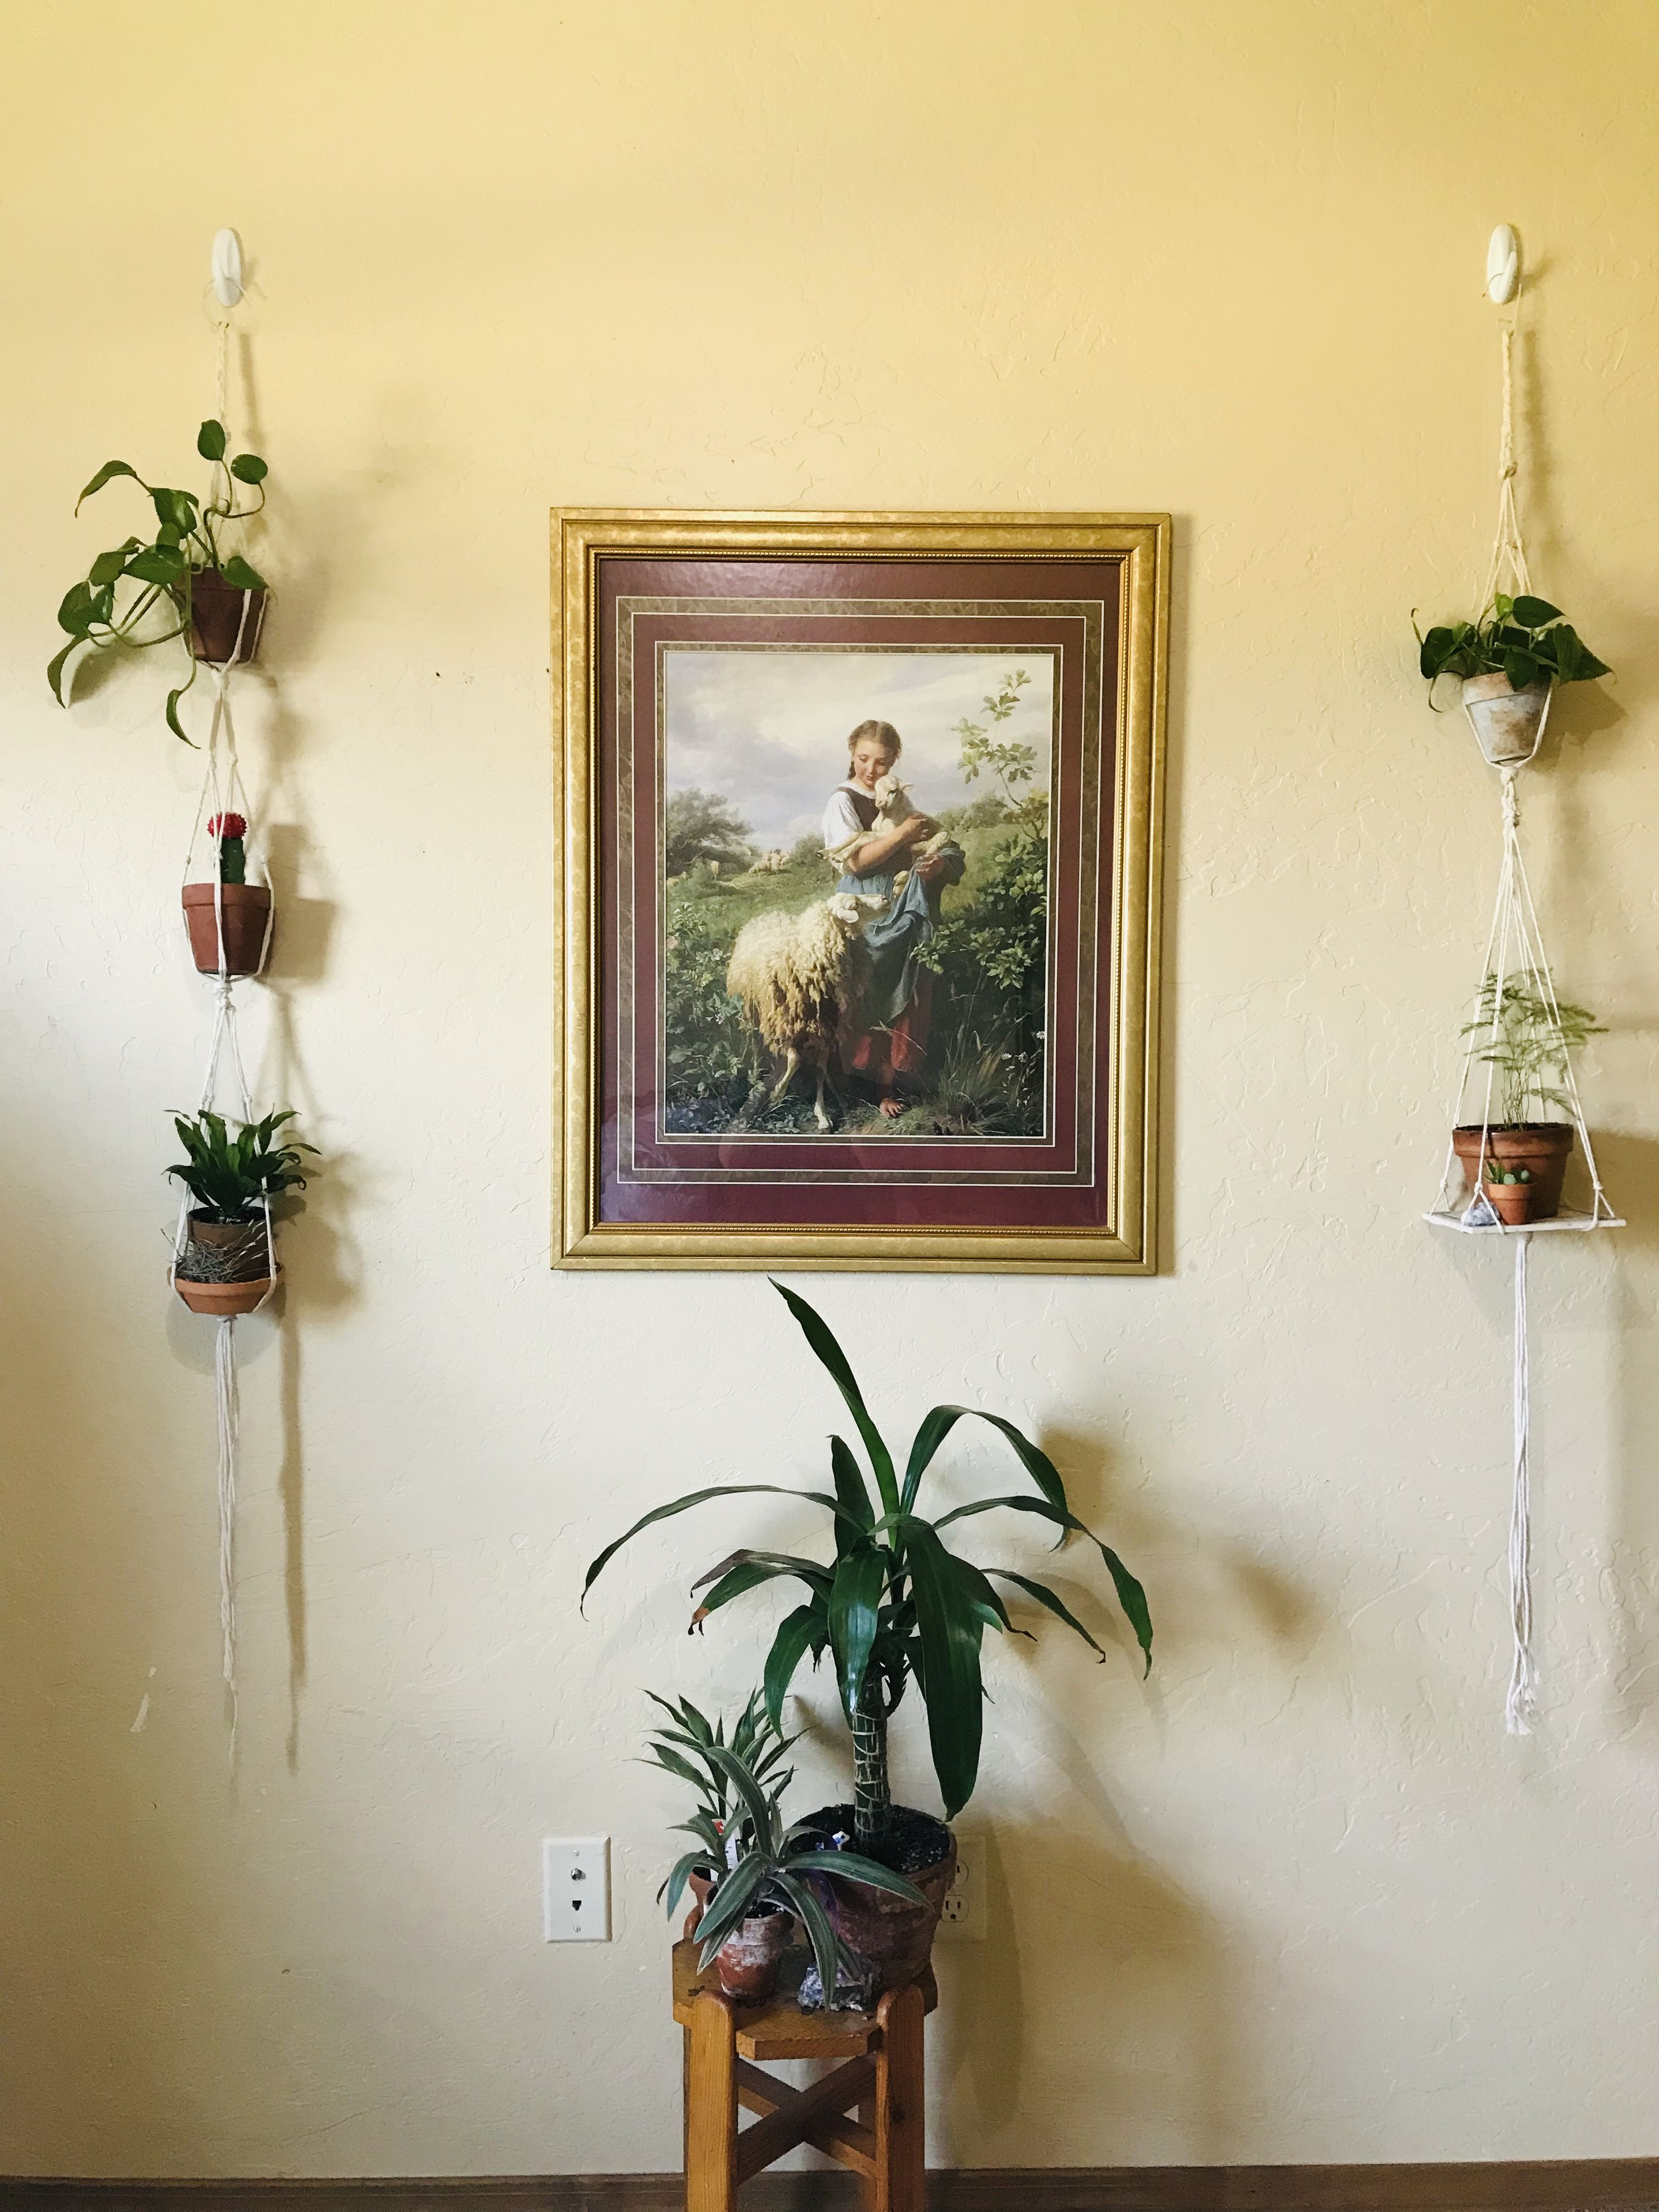 Hanging Plant Diy In 2020 Hanging Plants Diy Hanging Plants Stripped Decor